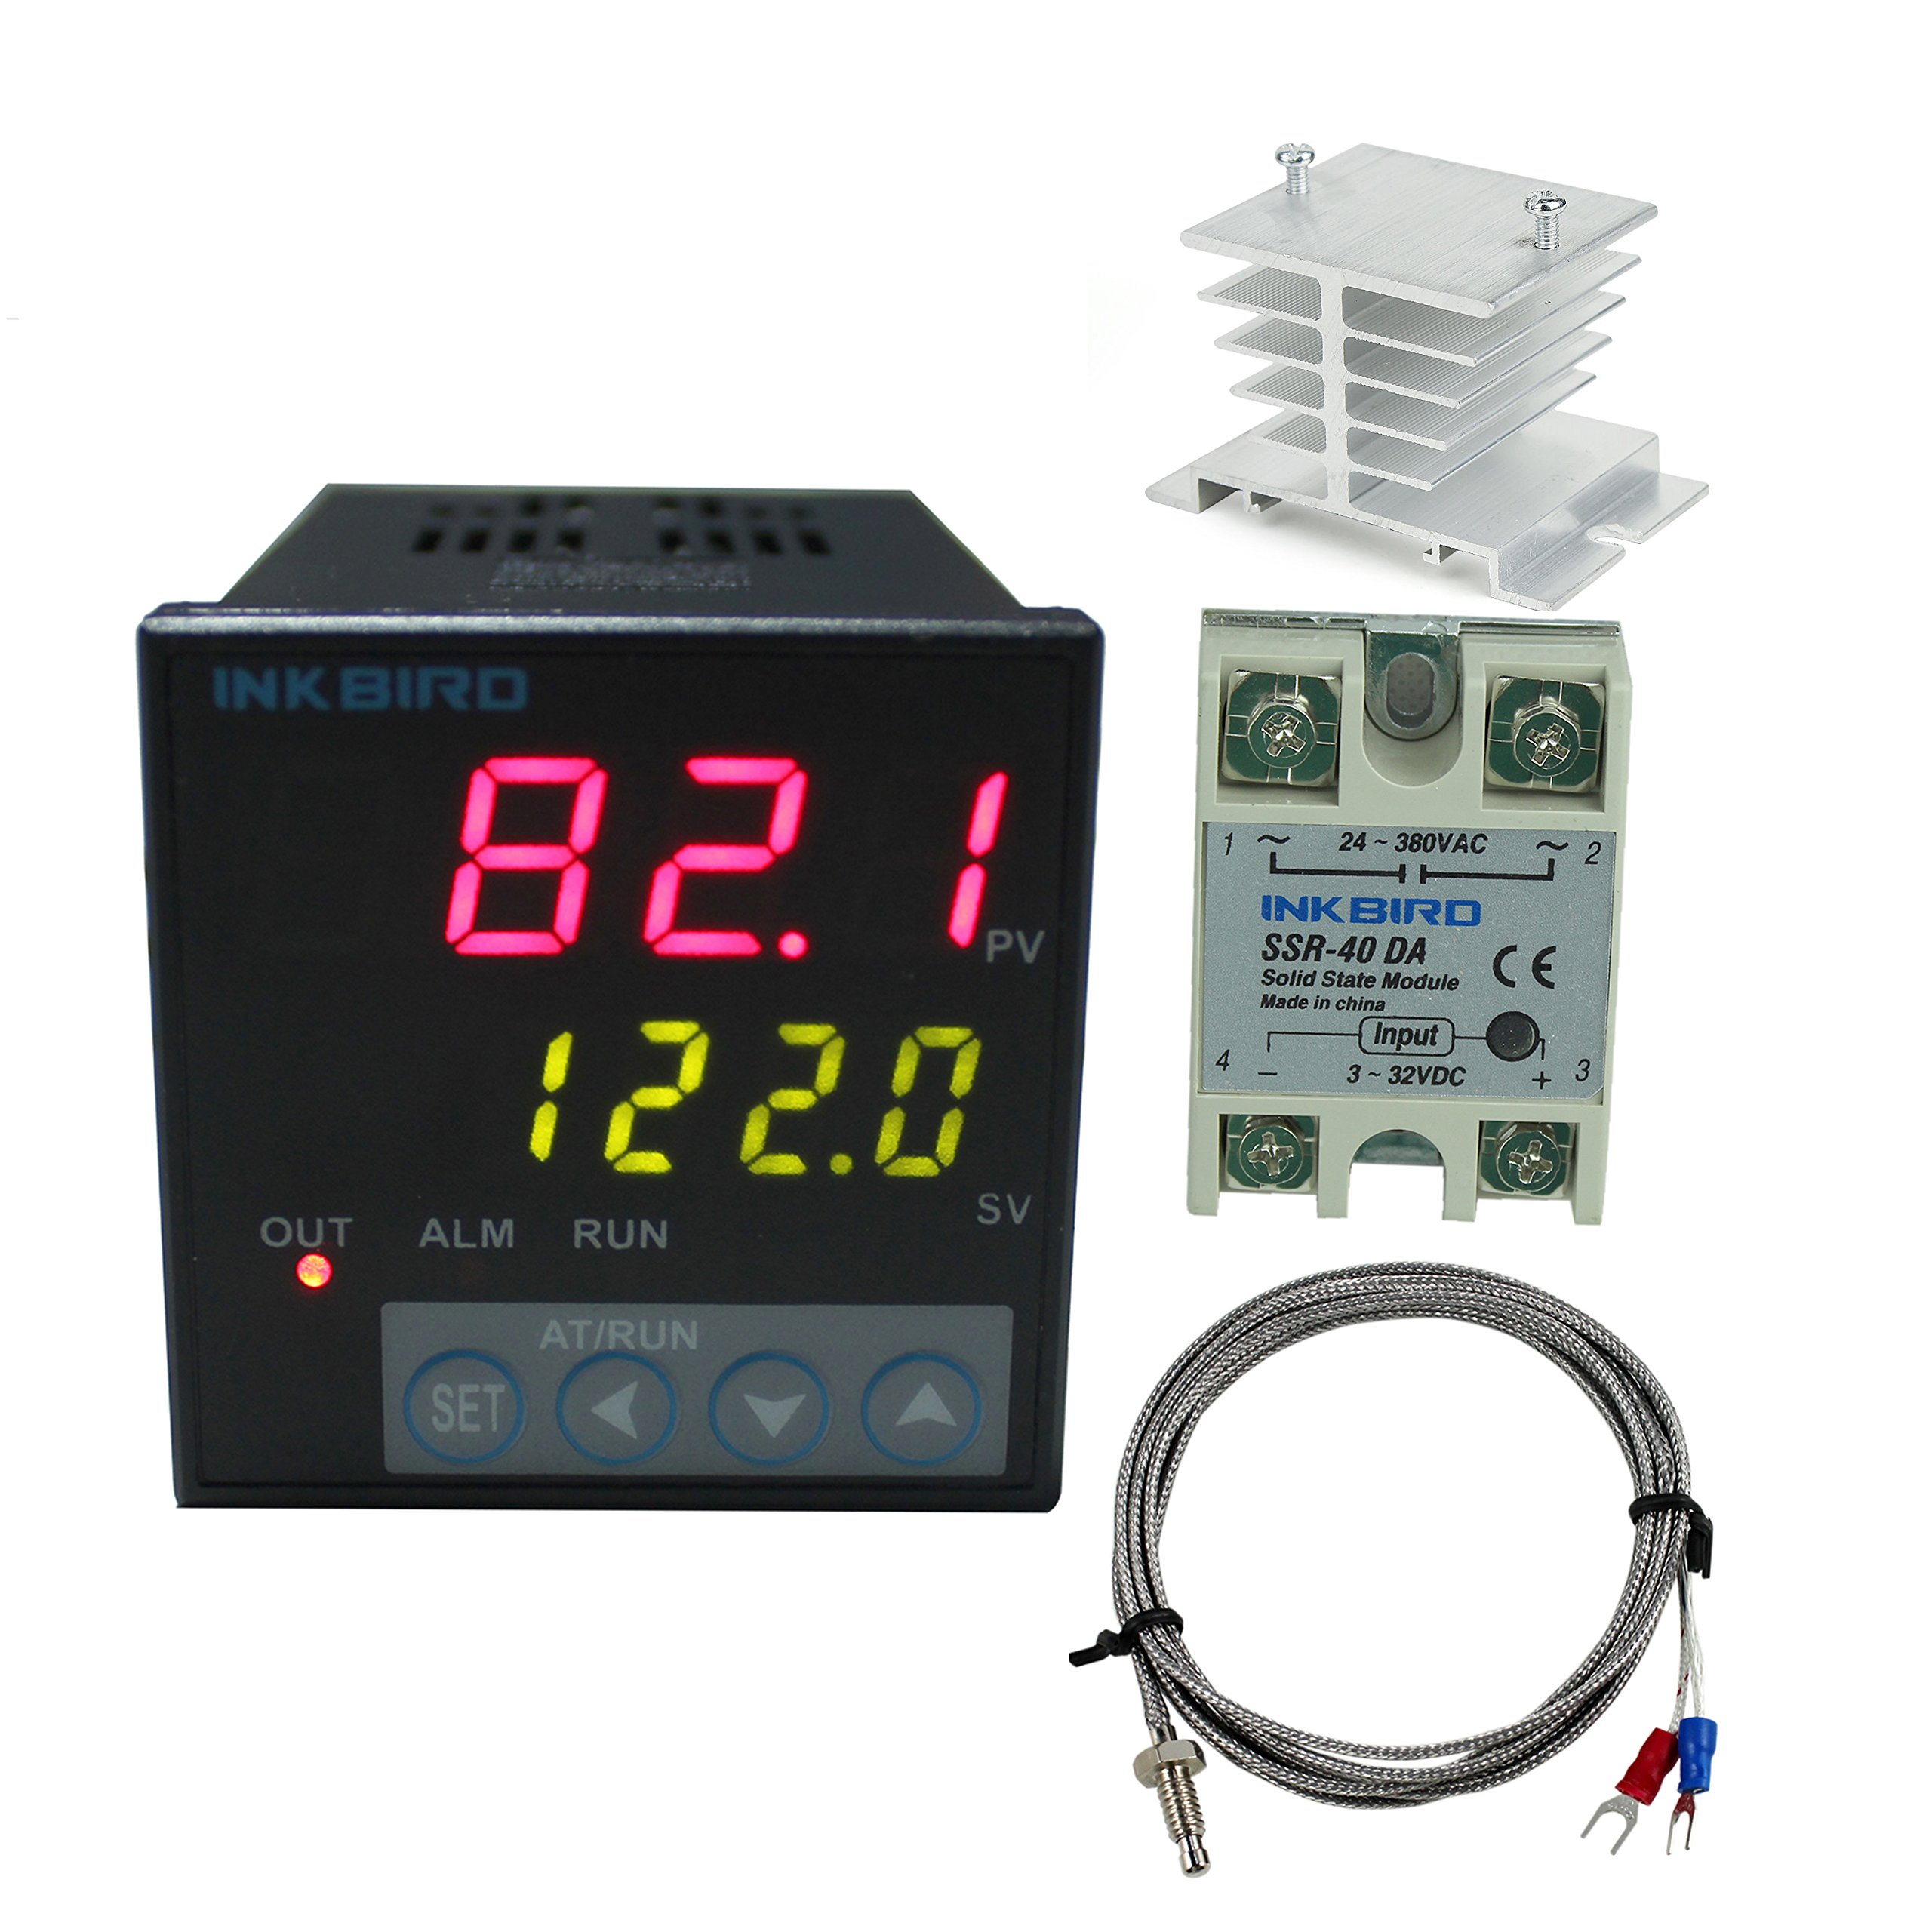 Inkbird F Display PID Temperature Controllers Thermostat ITC-106VH, K Sensor, Heat Sink and Solid State Relay, 100ACV - 240ACV (ITC-106VH + 40A SSR + White heat sink + K Probe) by Inkbird